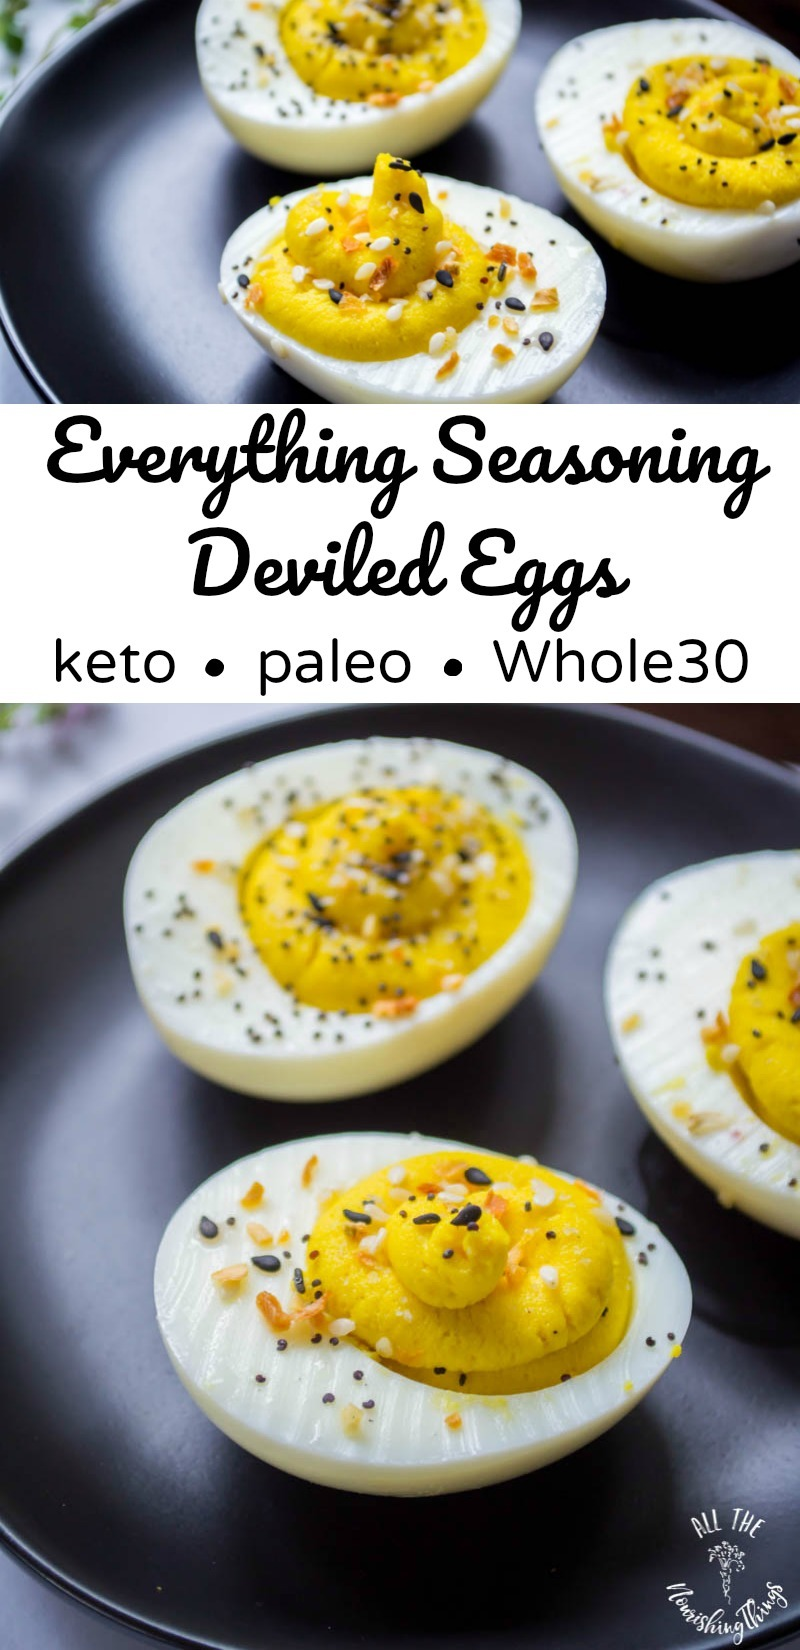 everything seasoning deviled eggs on black plate with text overlay